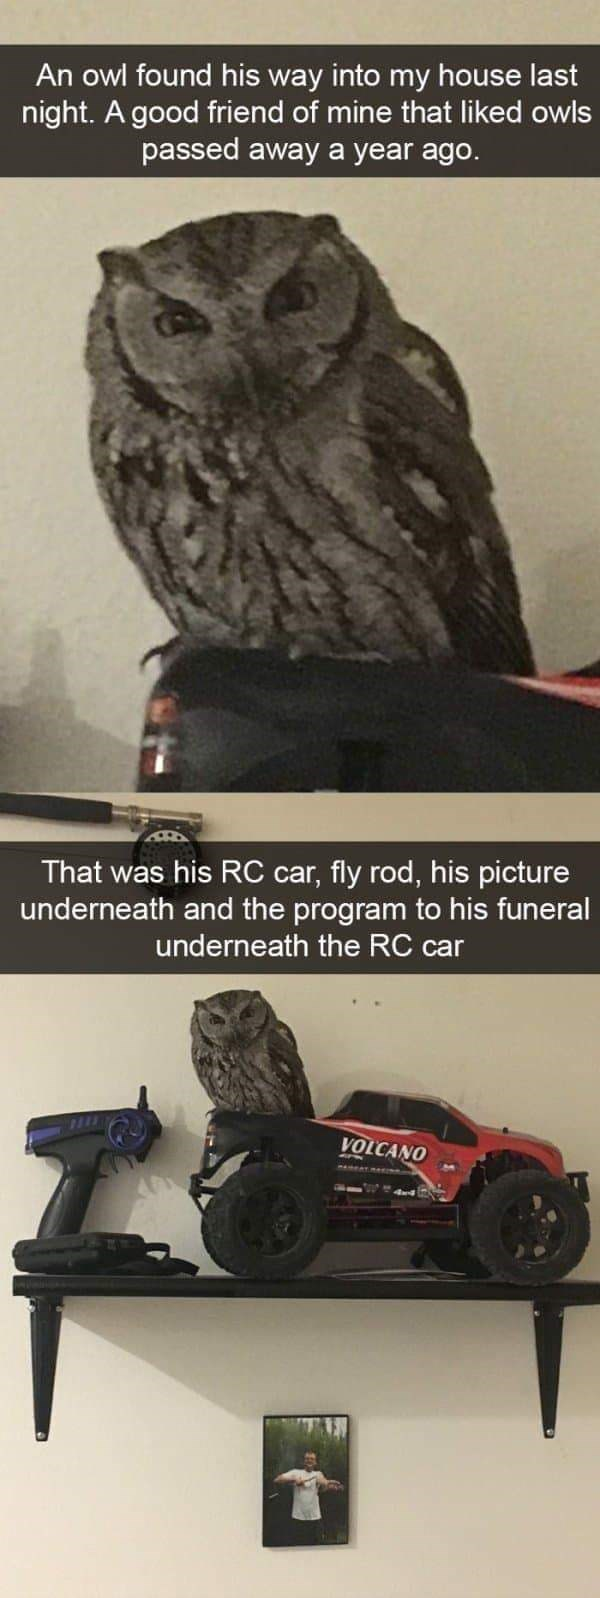 Tire - An owl found his way into my house last night. A good friend of mine that liked owls passed away a year ago. That was his RC car, fly rod, his pic underneath and the program to his funeral underneath the RC car VOLCANO